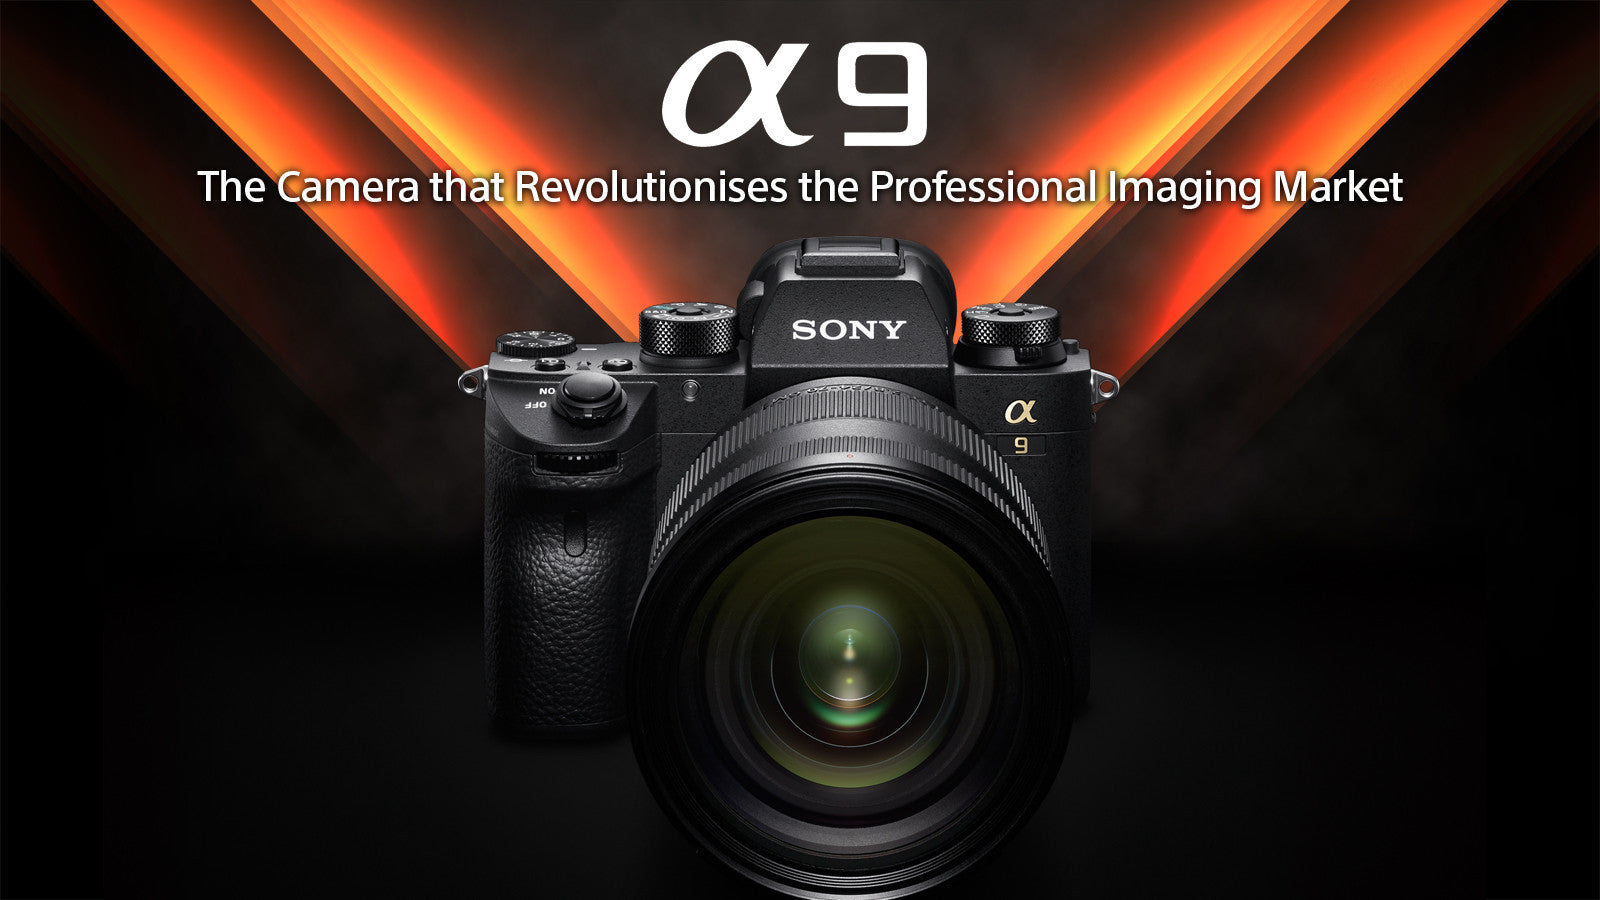 Sony's new a9 is aimed squarely at the sports and action DSLR market